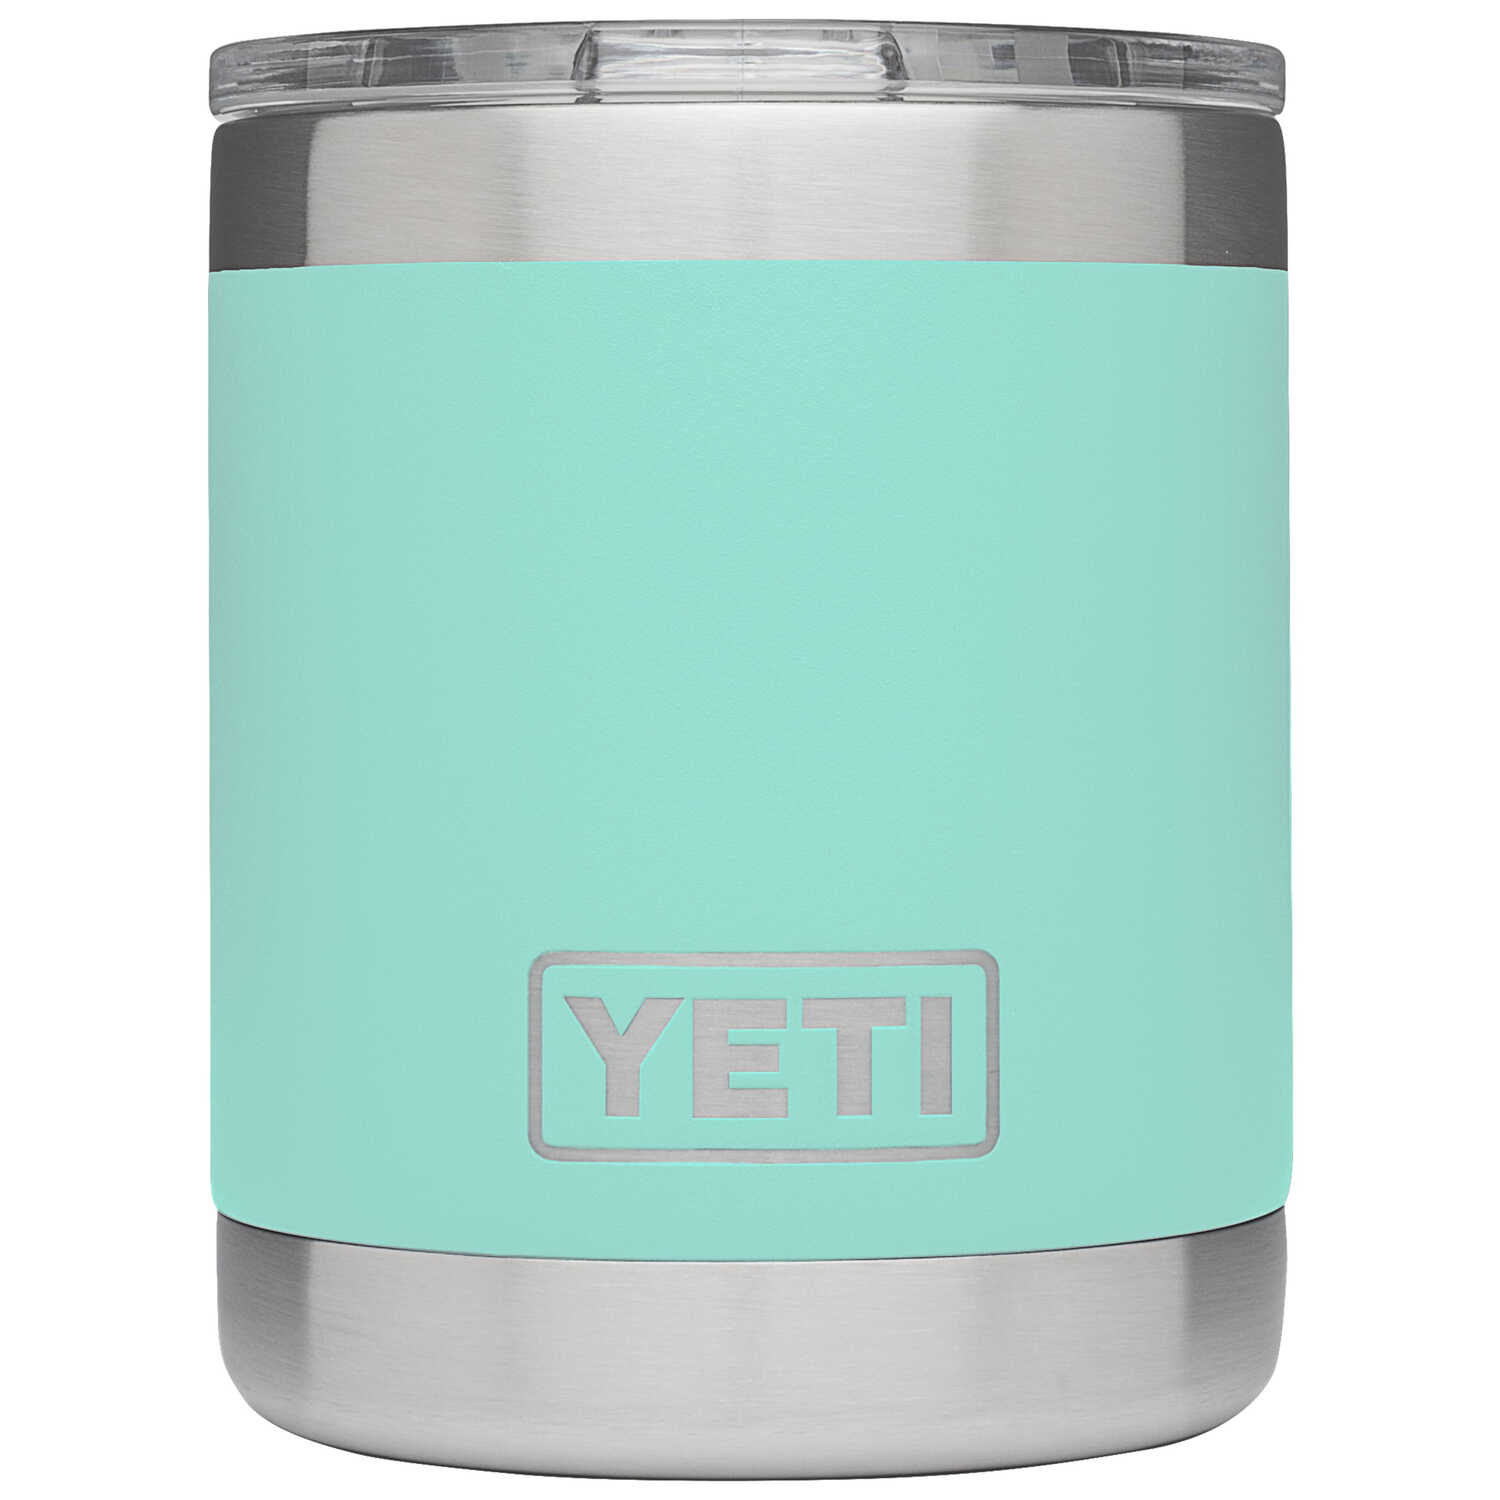 YETI  Rambler  Seafoam Green  Stainless Steel  Insulated Tumbler  BPA Free 10 oz. Lowball